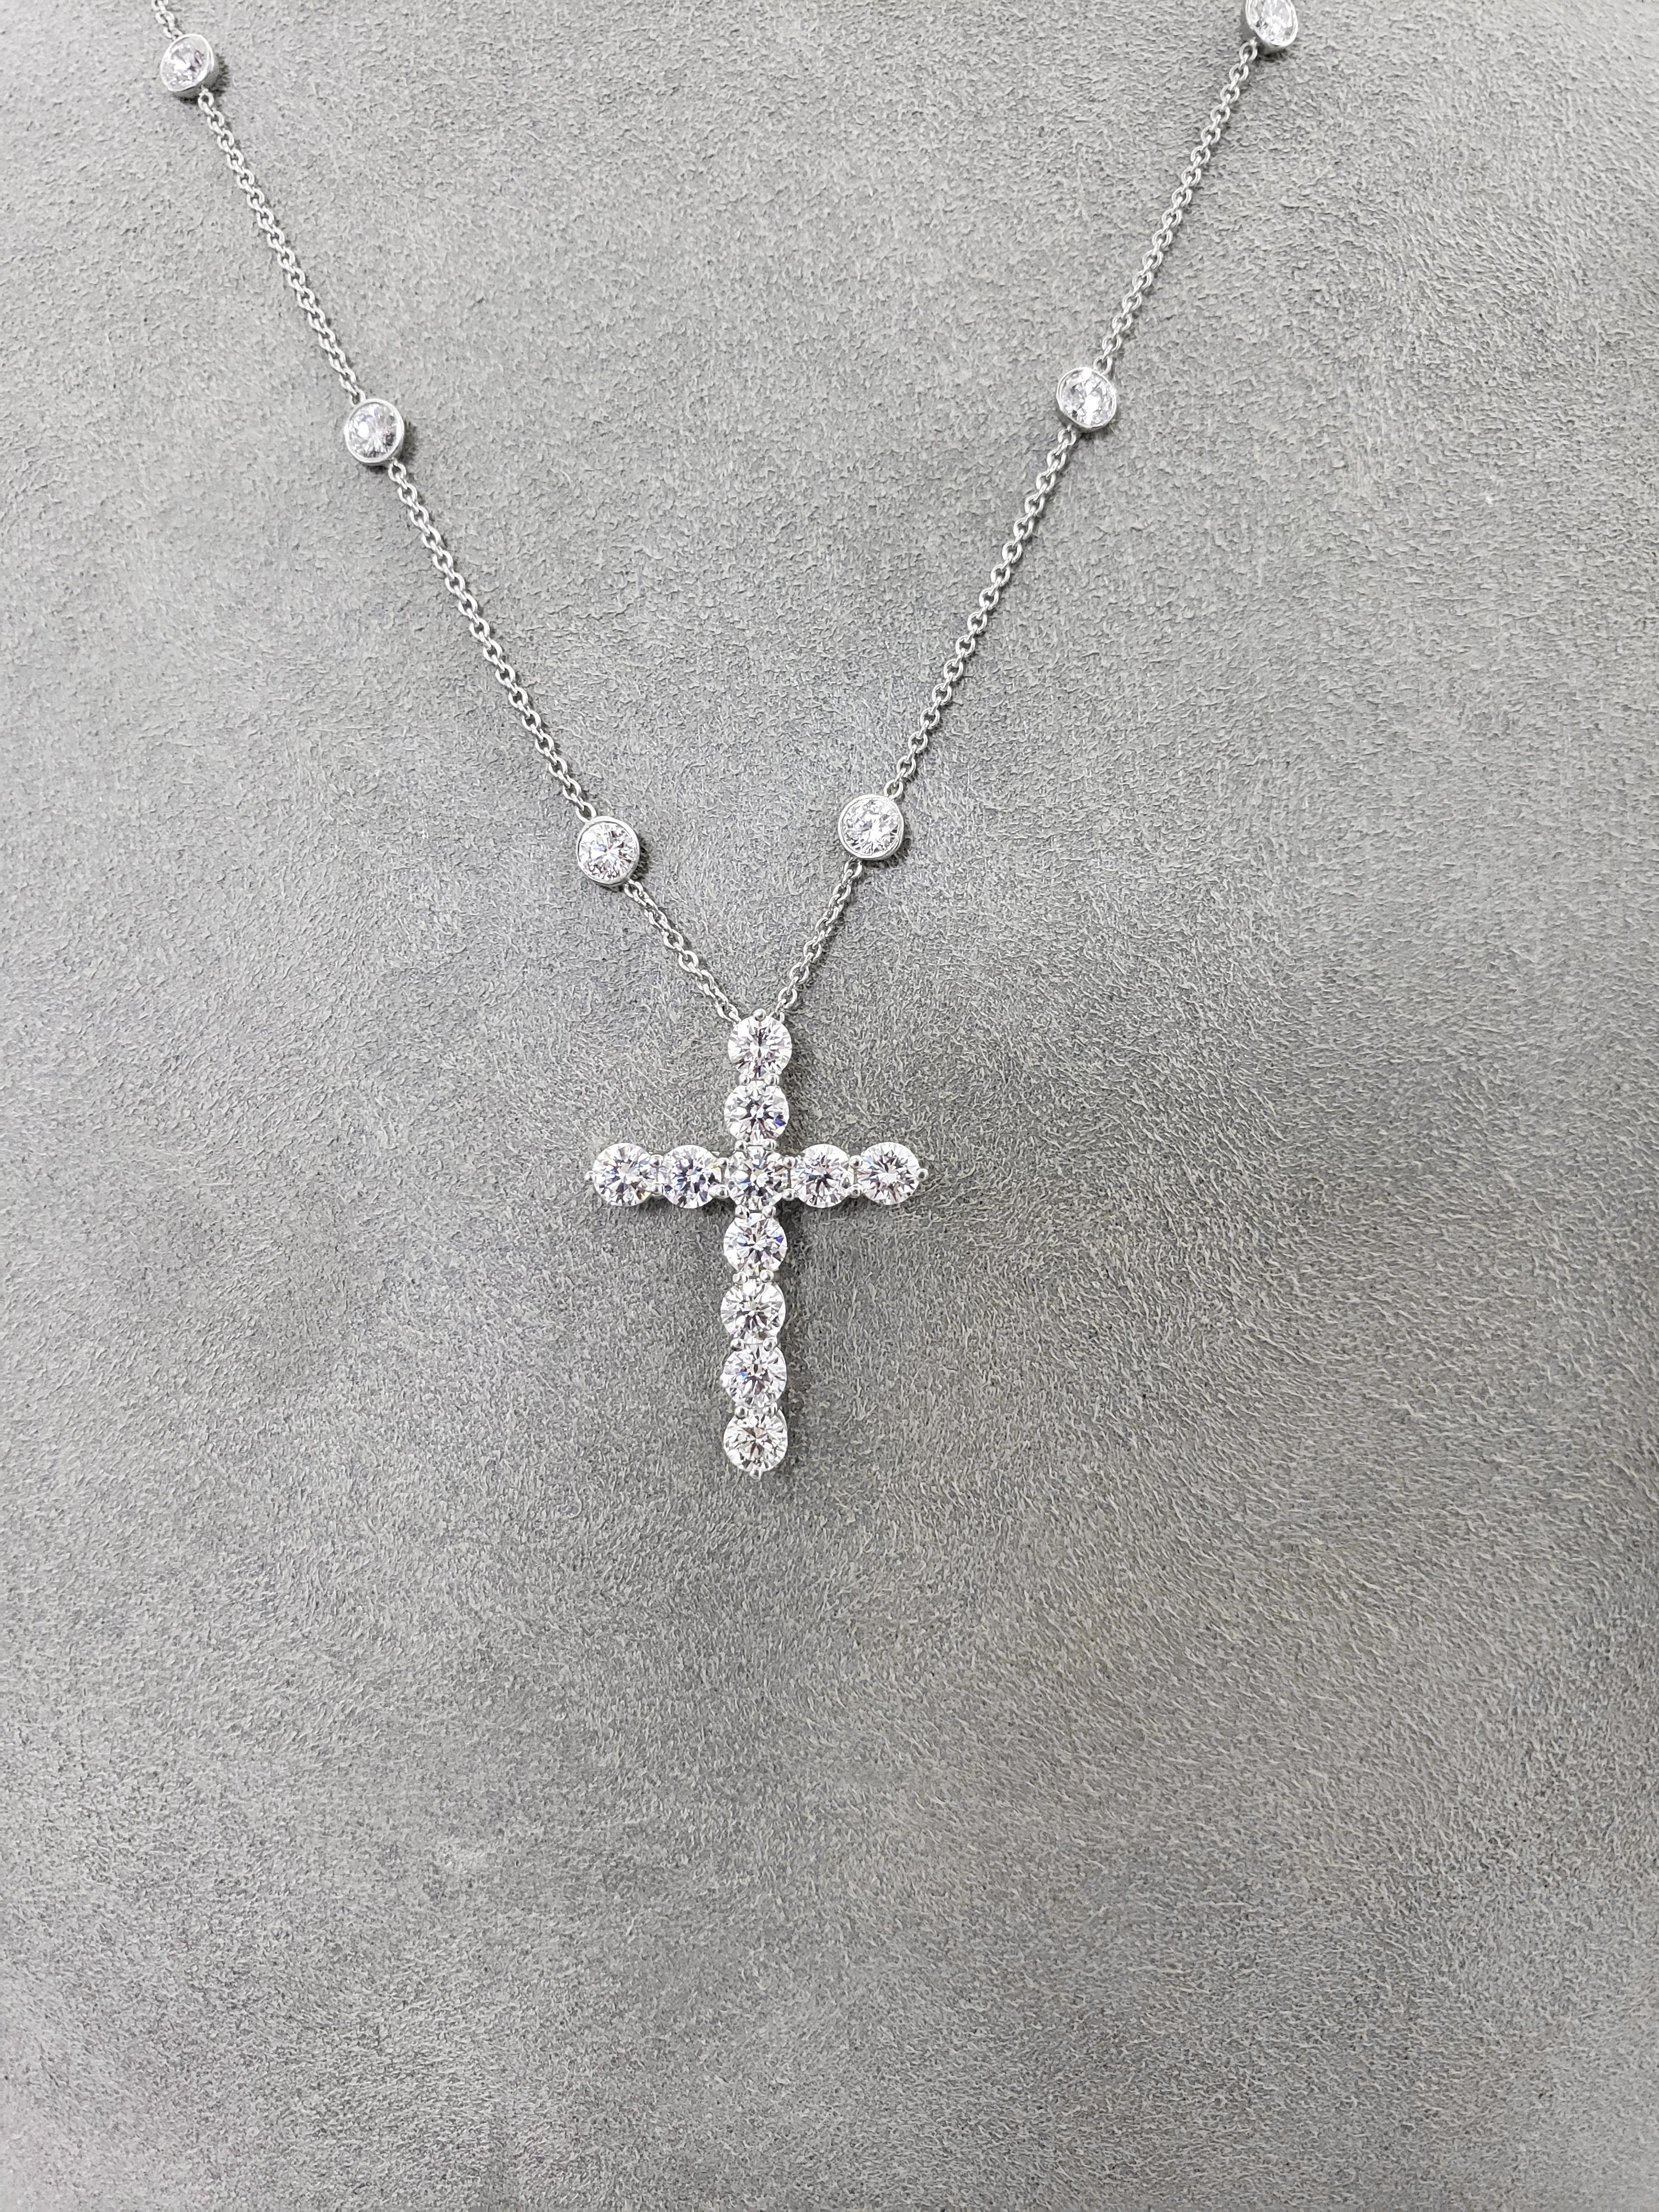 d97b736d9 Tiffany and Co. 4.75 Carat Diamond Cross Pendant Necklace For Sale at  1stdibs